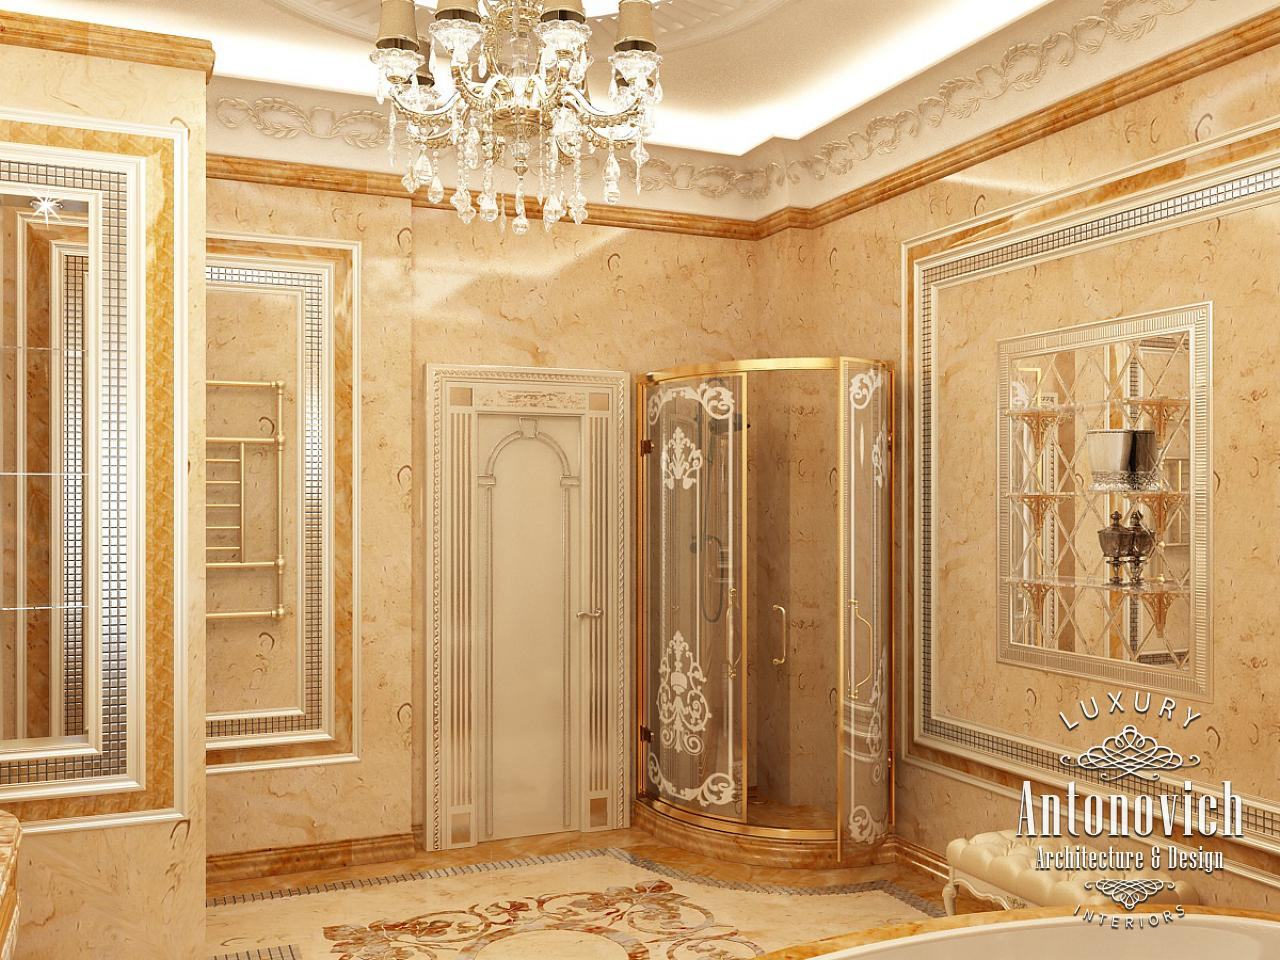 Luxury antonovich design uae bathroom design dubai for Bathroom interior design dubai